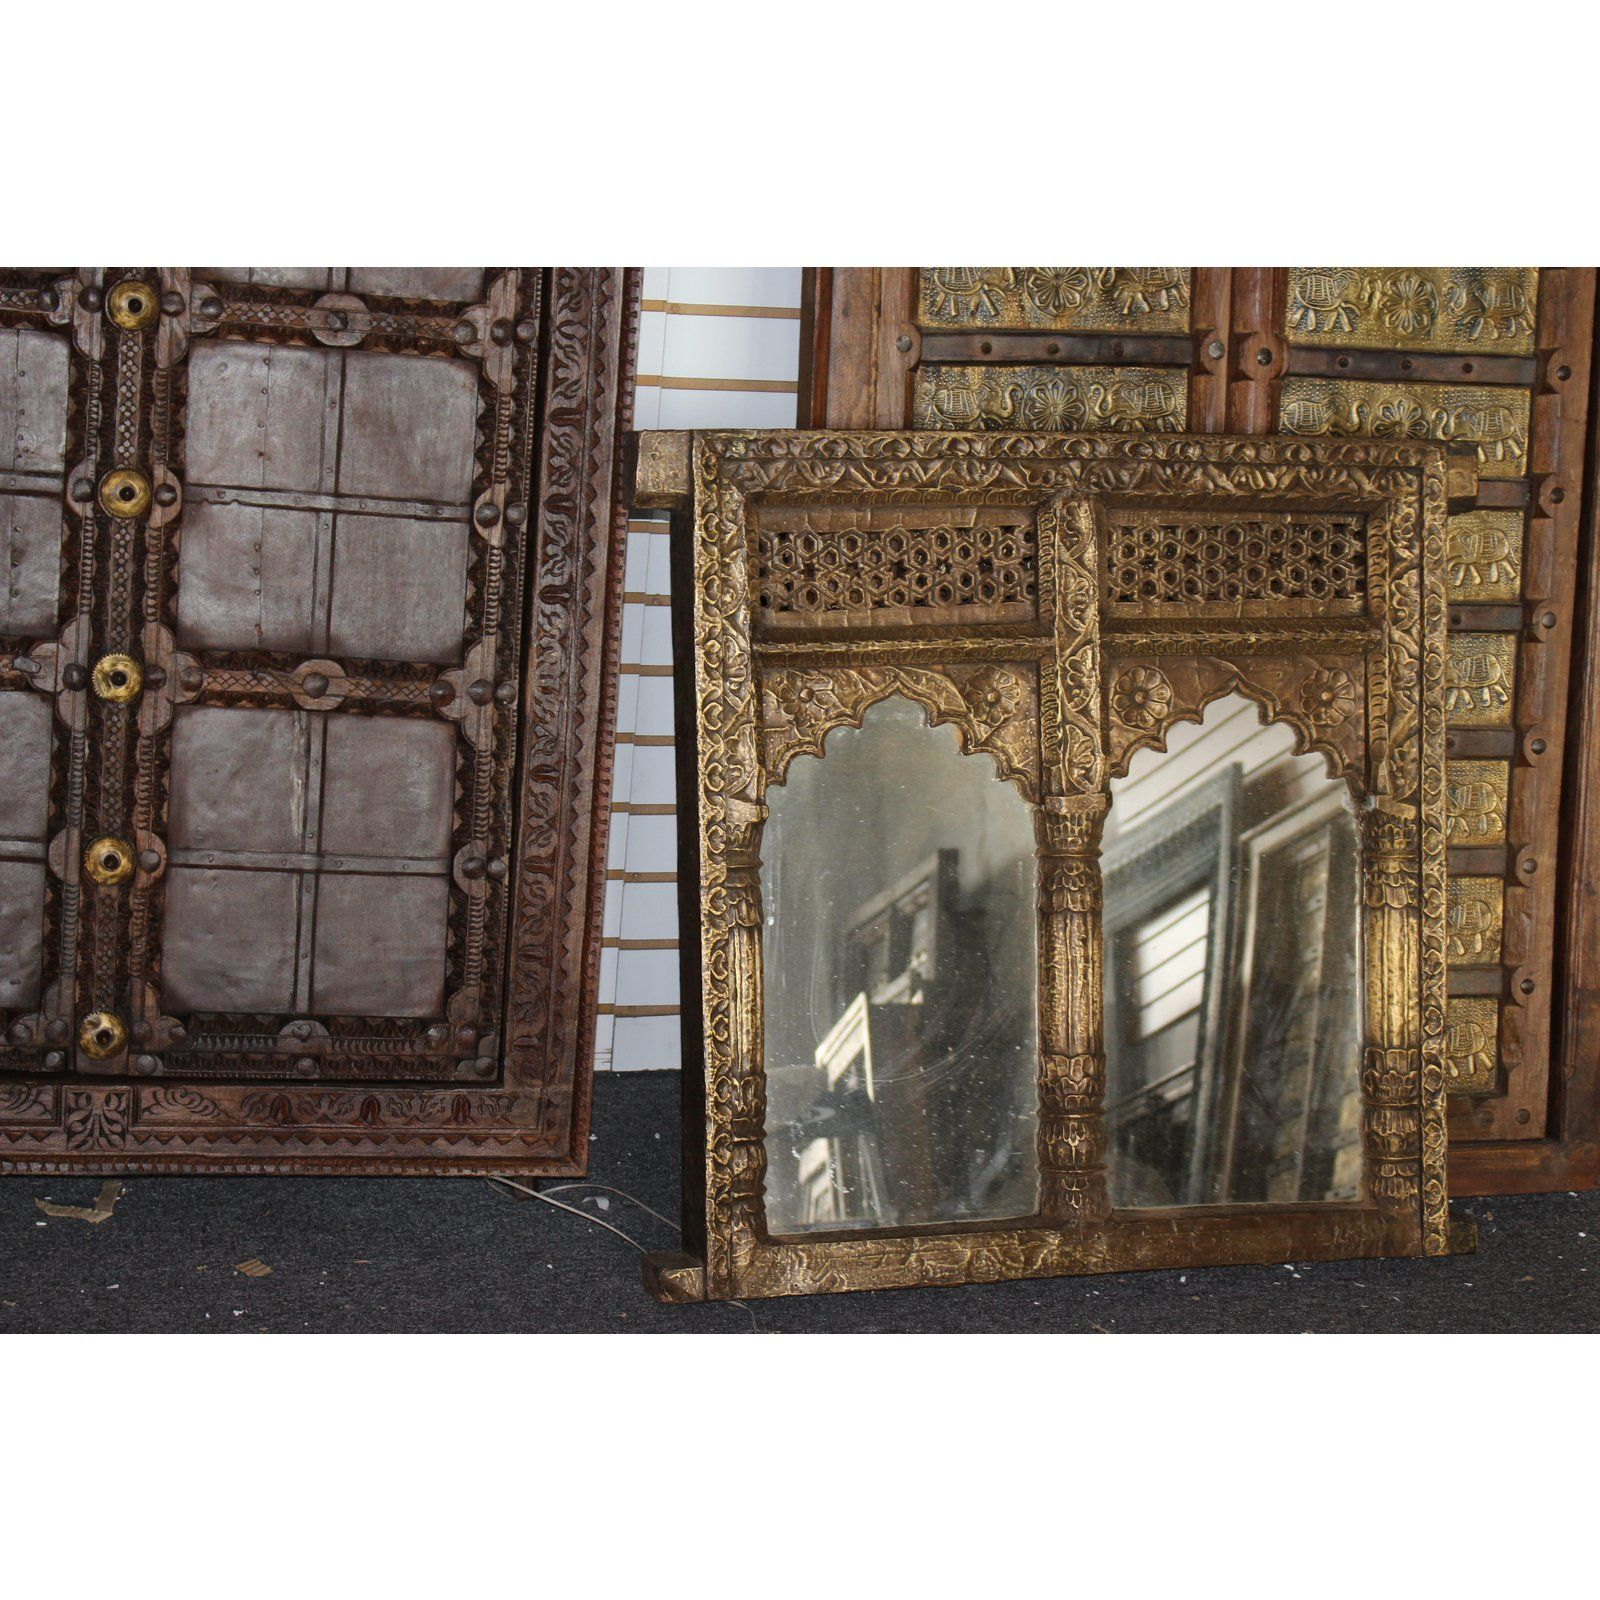 A Hand Carved Wooden Indian Mirror With Two Arched Profiles The